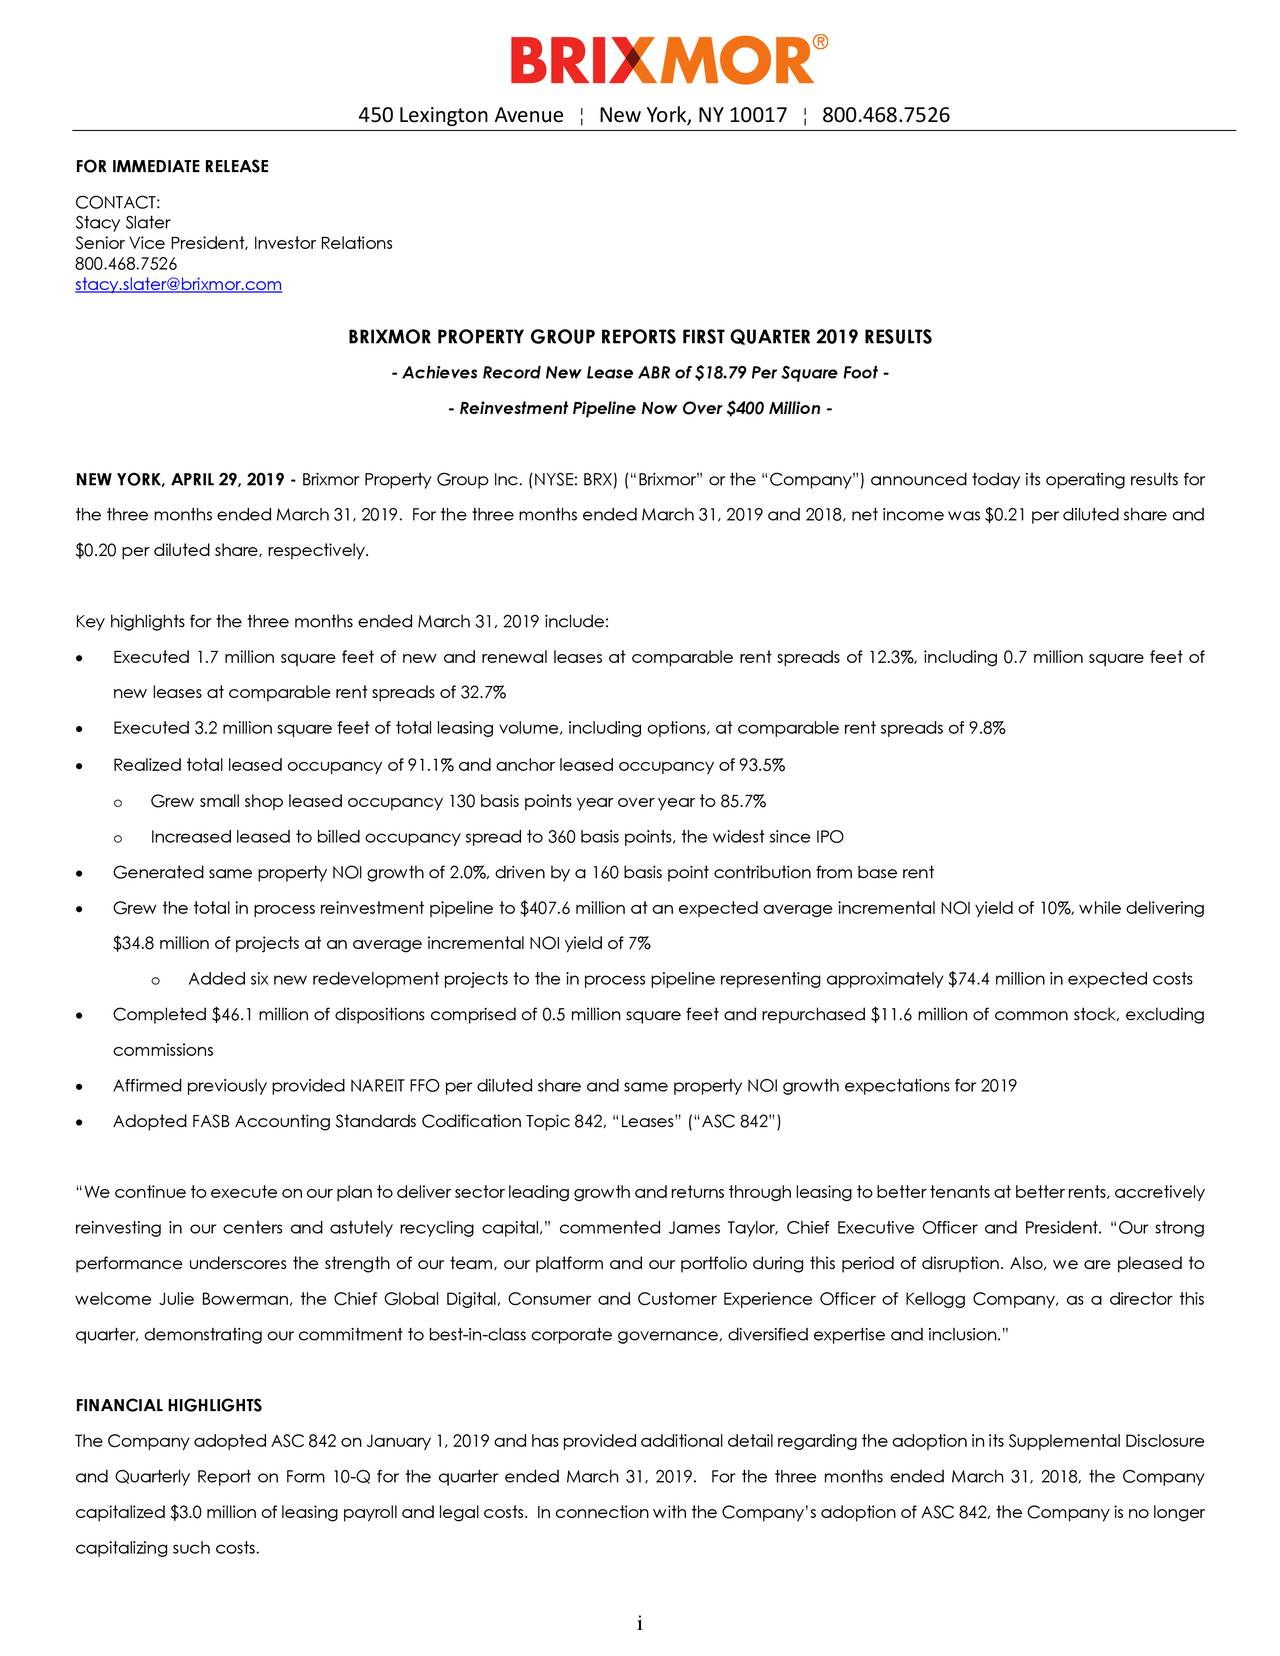 """FOR IMMEDIATE RELEASE CONTACT: Stacy Slater Senior Vice President, Investor Relations 800.468.7526 stacy.slater@brixmor.com BRIXMOR PROPERTY GROUP REPORTS FIRST QUARTER 2019 RESULTS - Achieves Record New Lease ABR of $18.79 Per Square Foot - - Reinvestment Pipeline Now Over $400 Million - NEW YORK,APRIL 29, 2019 - Brixmor Property Group Inc. (NYSE: BRX)(""""Brixmor"""" or the """"Company"""") announced today its operating results for the three months endedMarch 31, 2019. For the three months ended March 31, 2019and 2018, net income was $0.21 per diluted share and $0.20 per diluted share, respectively. Key highlights for the three months ended March 31, 2019 include: • Executed 1.7 million square feet of new and renewal leases at comparable rent spreads of 1 2.3%, including 0.7 million square feet of new leases at comparable rent spreads of 32.7% • Executed 3.2 million square feet of total leasing volume, including options, at comparable rent spreads of 9.8% • Realized total leased occupancy of 91.1% and anchor leased occupancy of 93.5% o Grew small shop leased occupancy 130 basis points year over year to 85.7% o Increased leased to billed occupancy spread to 360 basis points, the widest since IPO • Generated same property NOI growth of 2.0%, driven by a160 basis point contribution from base rent • Grew the total in process reinvestment pipeline to $407.6 million at an expected average incremental NOI yield of 10%, while delivering $34.8 million of projects at an average incremental NOI yield of7% o Added six new redevelopment projects to the in process pipeline representing approximately $74.4 million in expected costs • Completed $46.1 million of dispositions comprised of 0.5 million square feetand repurchased $11.6 million of common stock, excluding commissions • Affirmed previously provided NAREIT FFO per diluted share and same property NOI growth expectations for 2019 • Adopted FASB Accounting Standards Codification Topic 842, """"Leases"""" (""""ASC 842"""") """"We continue toexecute on """